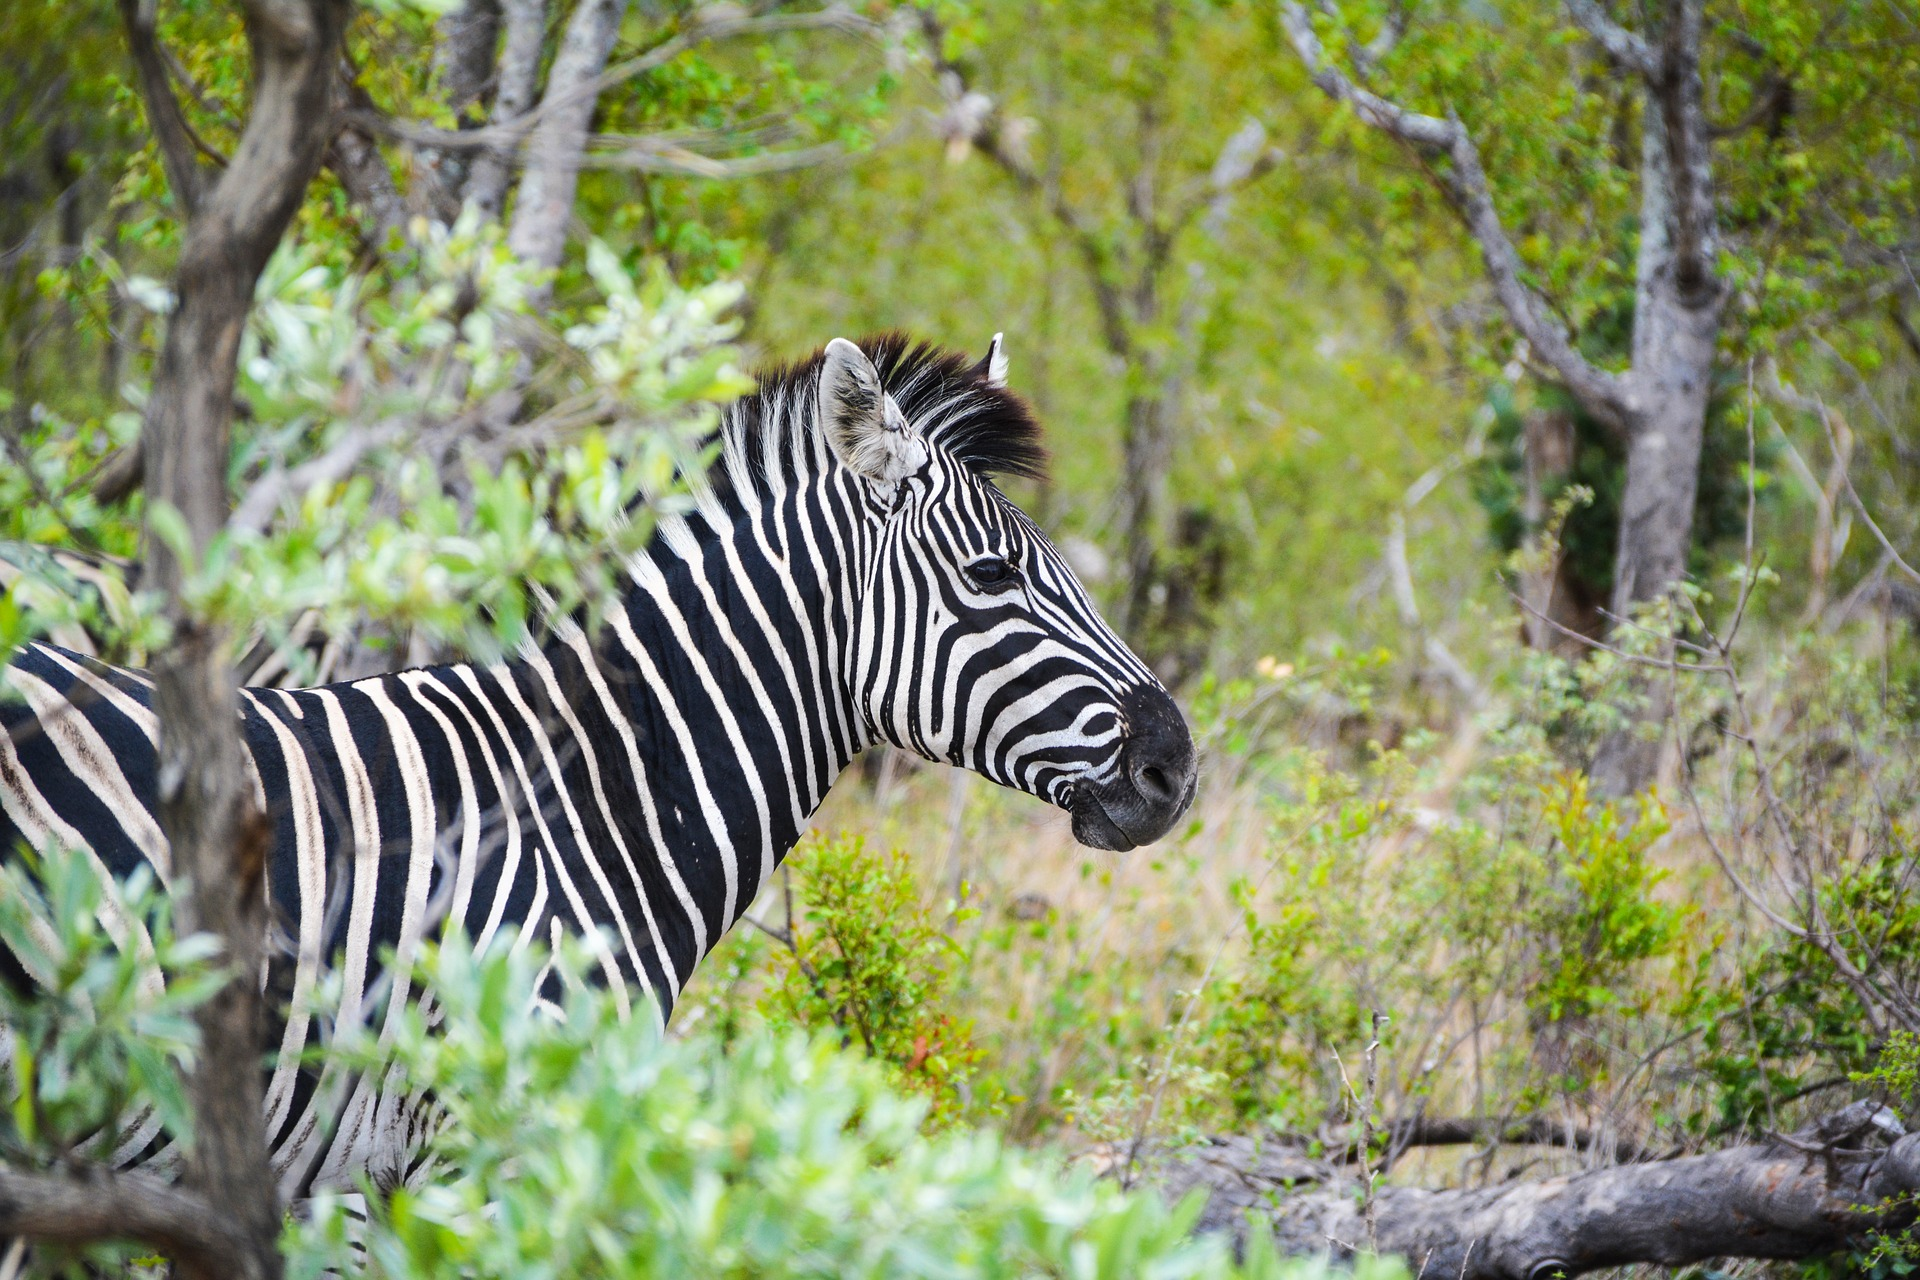 The Best of South Africa | Kruger National Park, Zebra